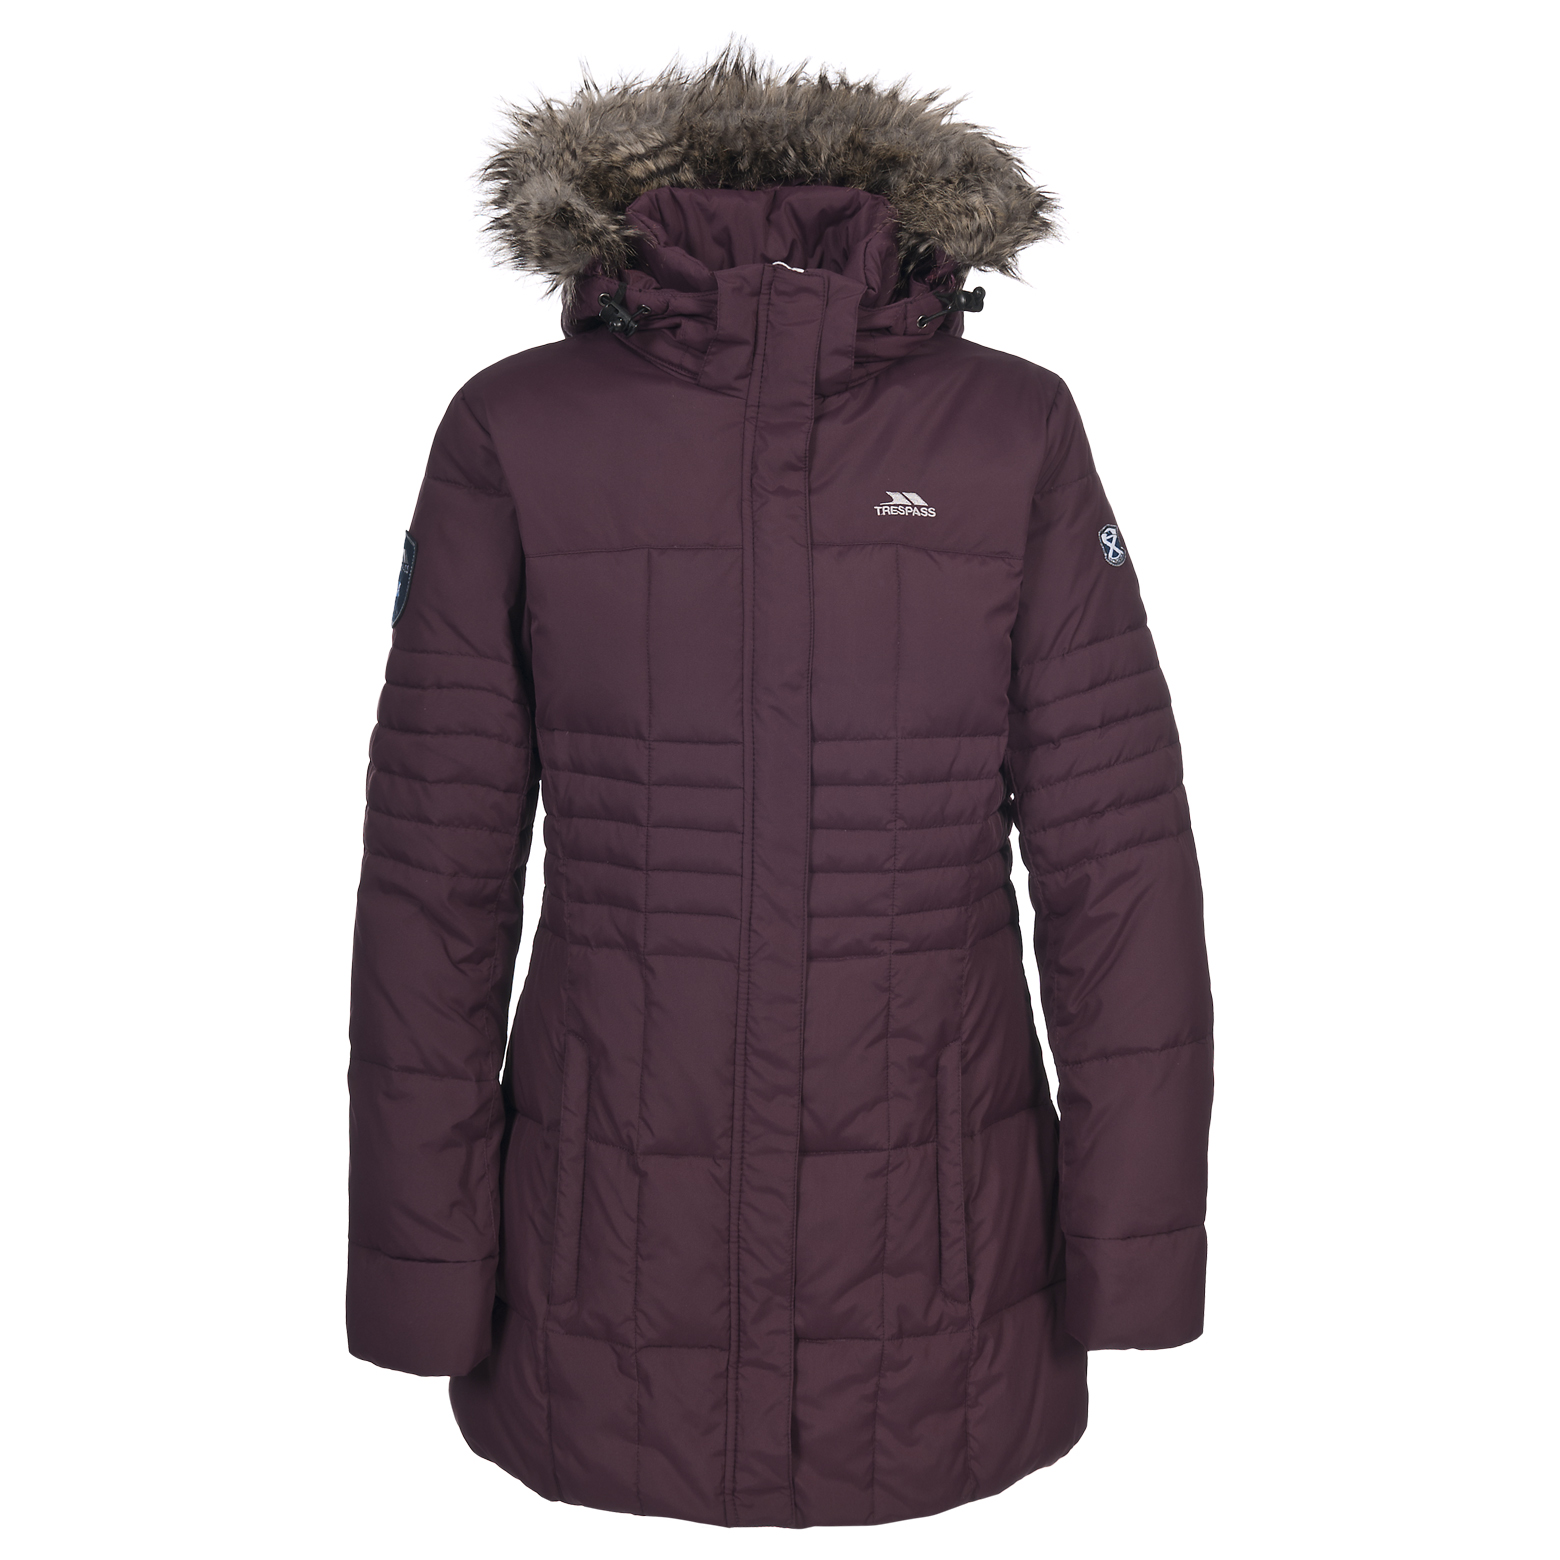 About Women's Jackets & Coats Be it performance or casual, functional or style-focused, the outerwear you choose says a lot about you. Women's jackets come in many materials and styles for all occasions, while women's coats offer a more formal look for chilly nights out and about.